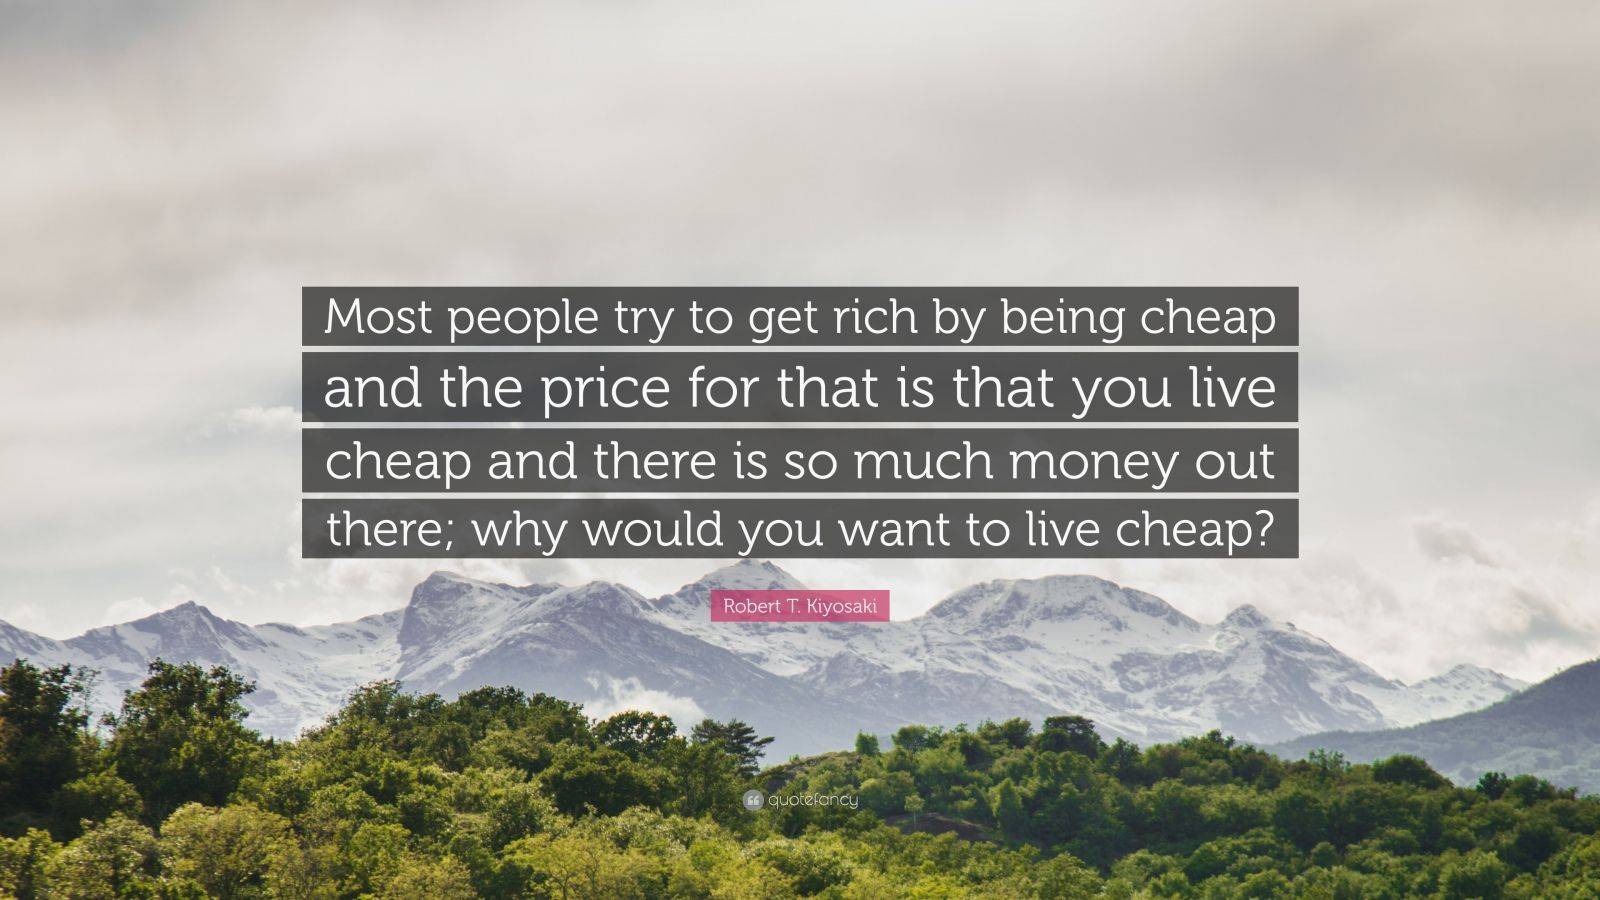 "Robert T. Kiyosaki Quote: ""Most people try to get rich by being cheap and the price for that is that you live cheap and there is so much money out there; why would you want to live cheap?"""